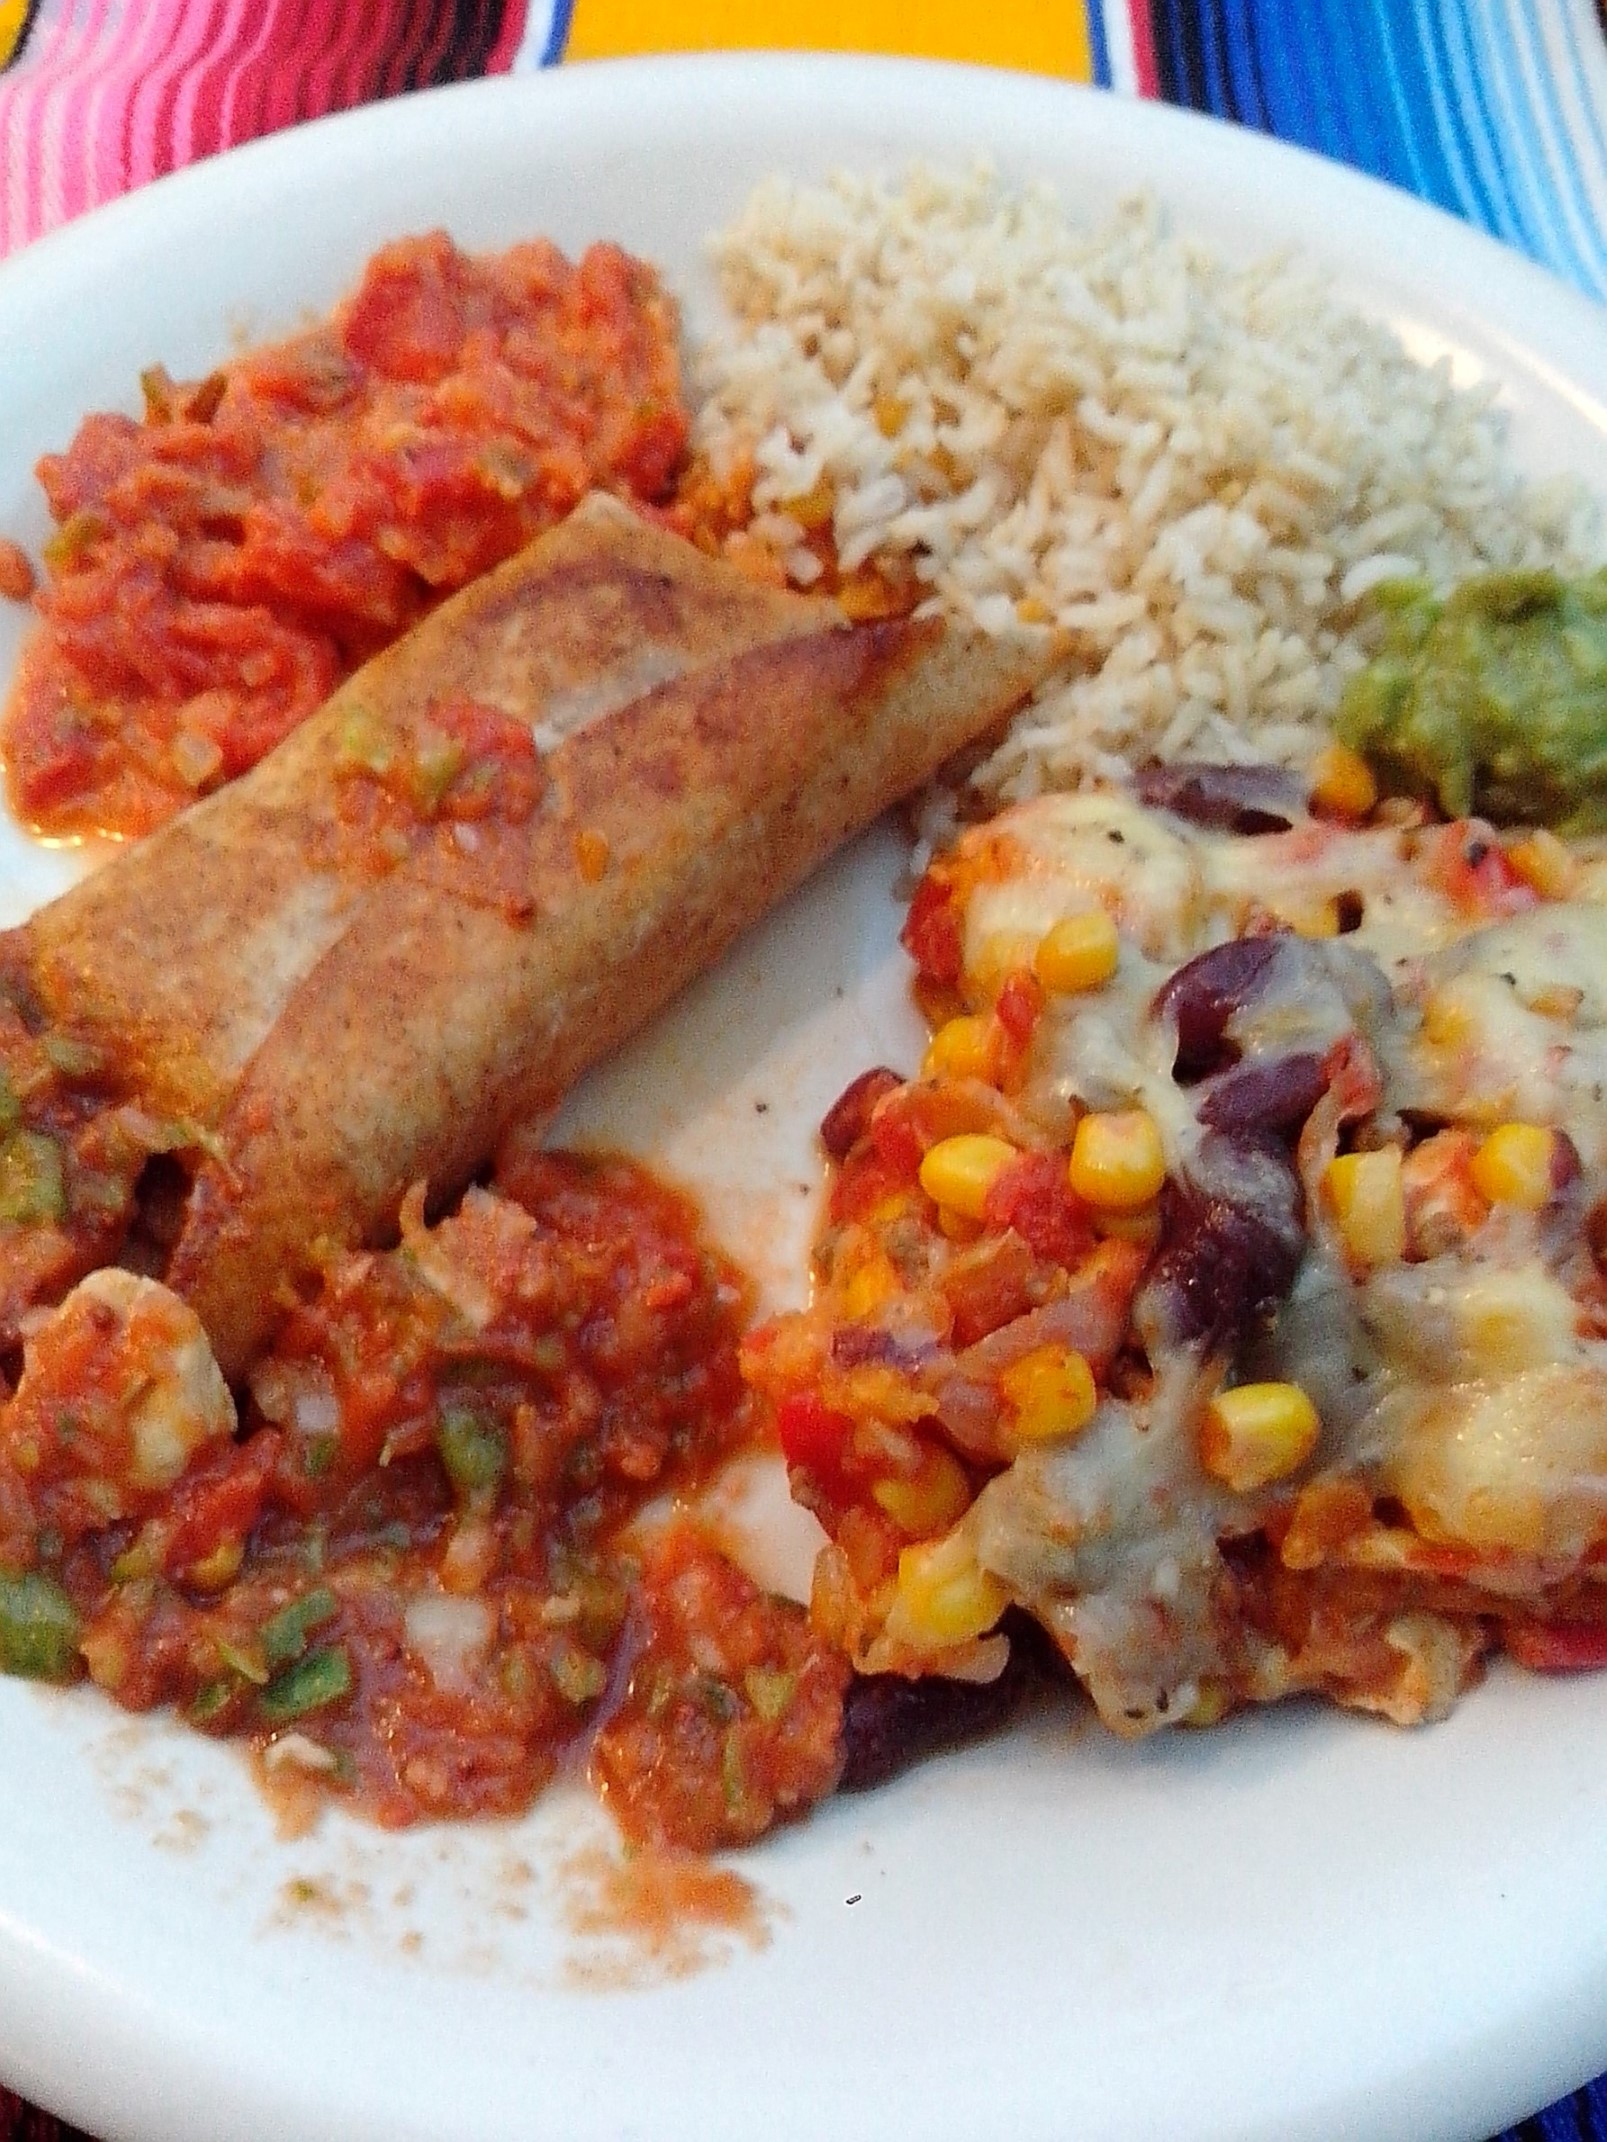 Chimichangas recept – Runderstoofvlees in tortilla – Mexicaanse keuken